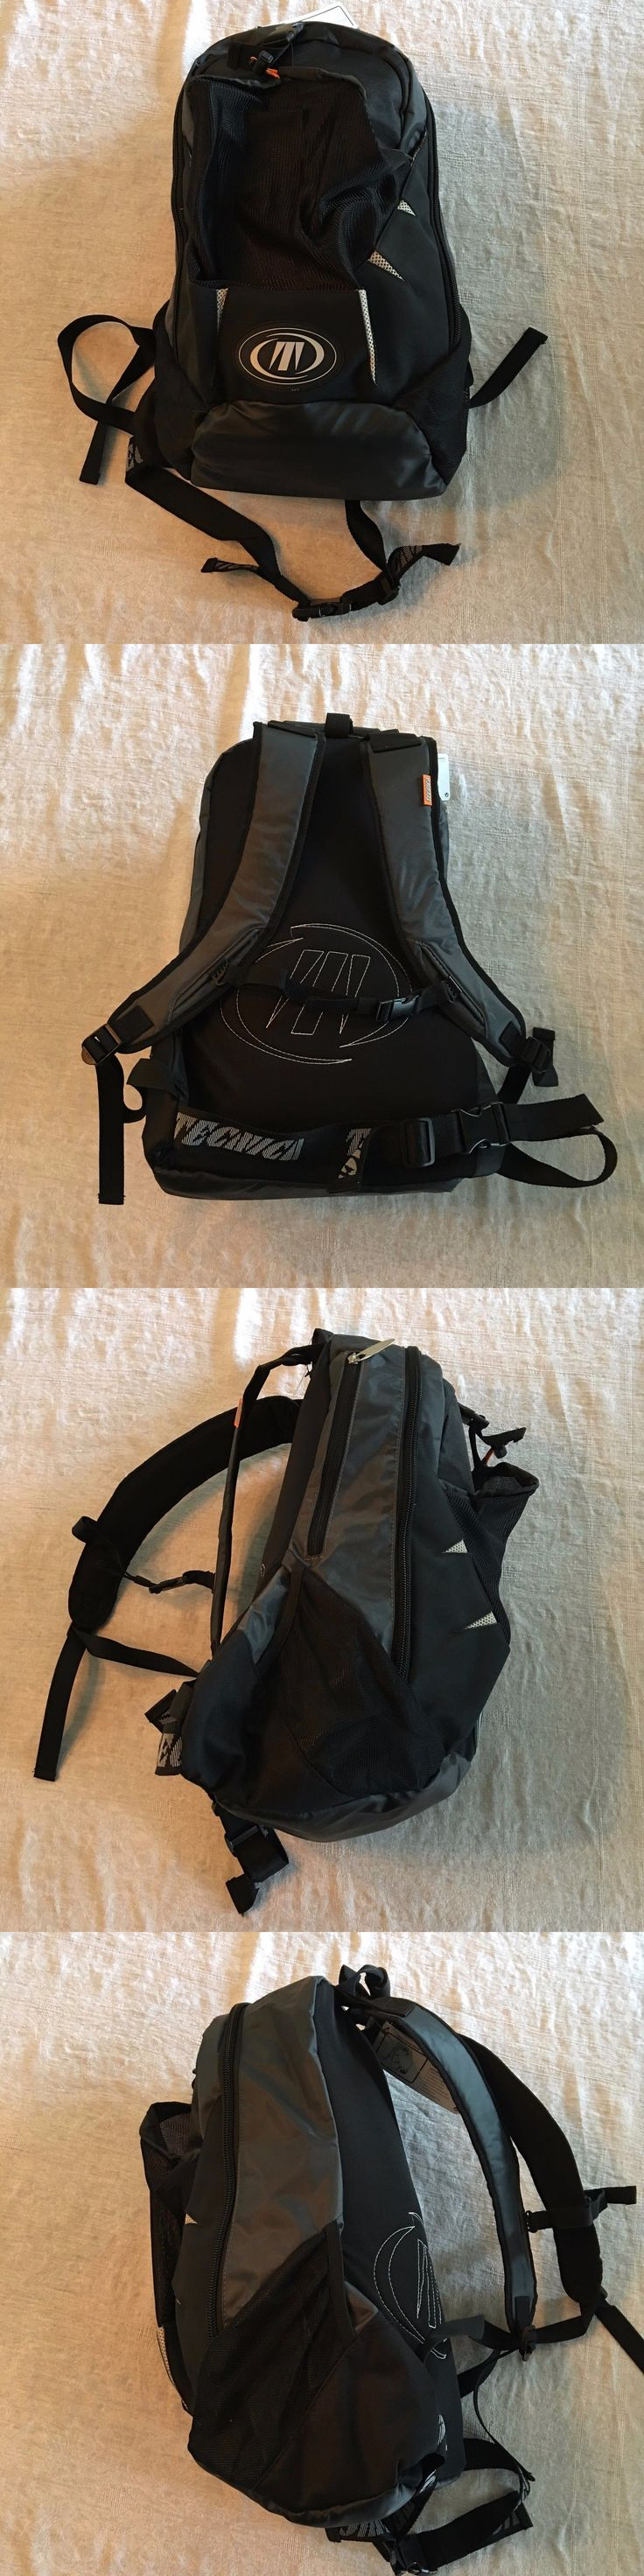 Bags and Backpacks 21229: Tecnica Ski Snow Outdoor Backpack Black / Grey - New With Tags! -> BUY IT NOW ONLY: $35 on eBay!